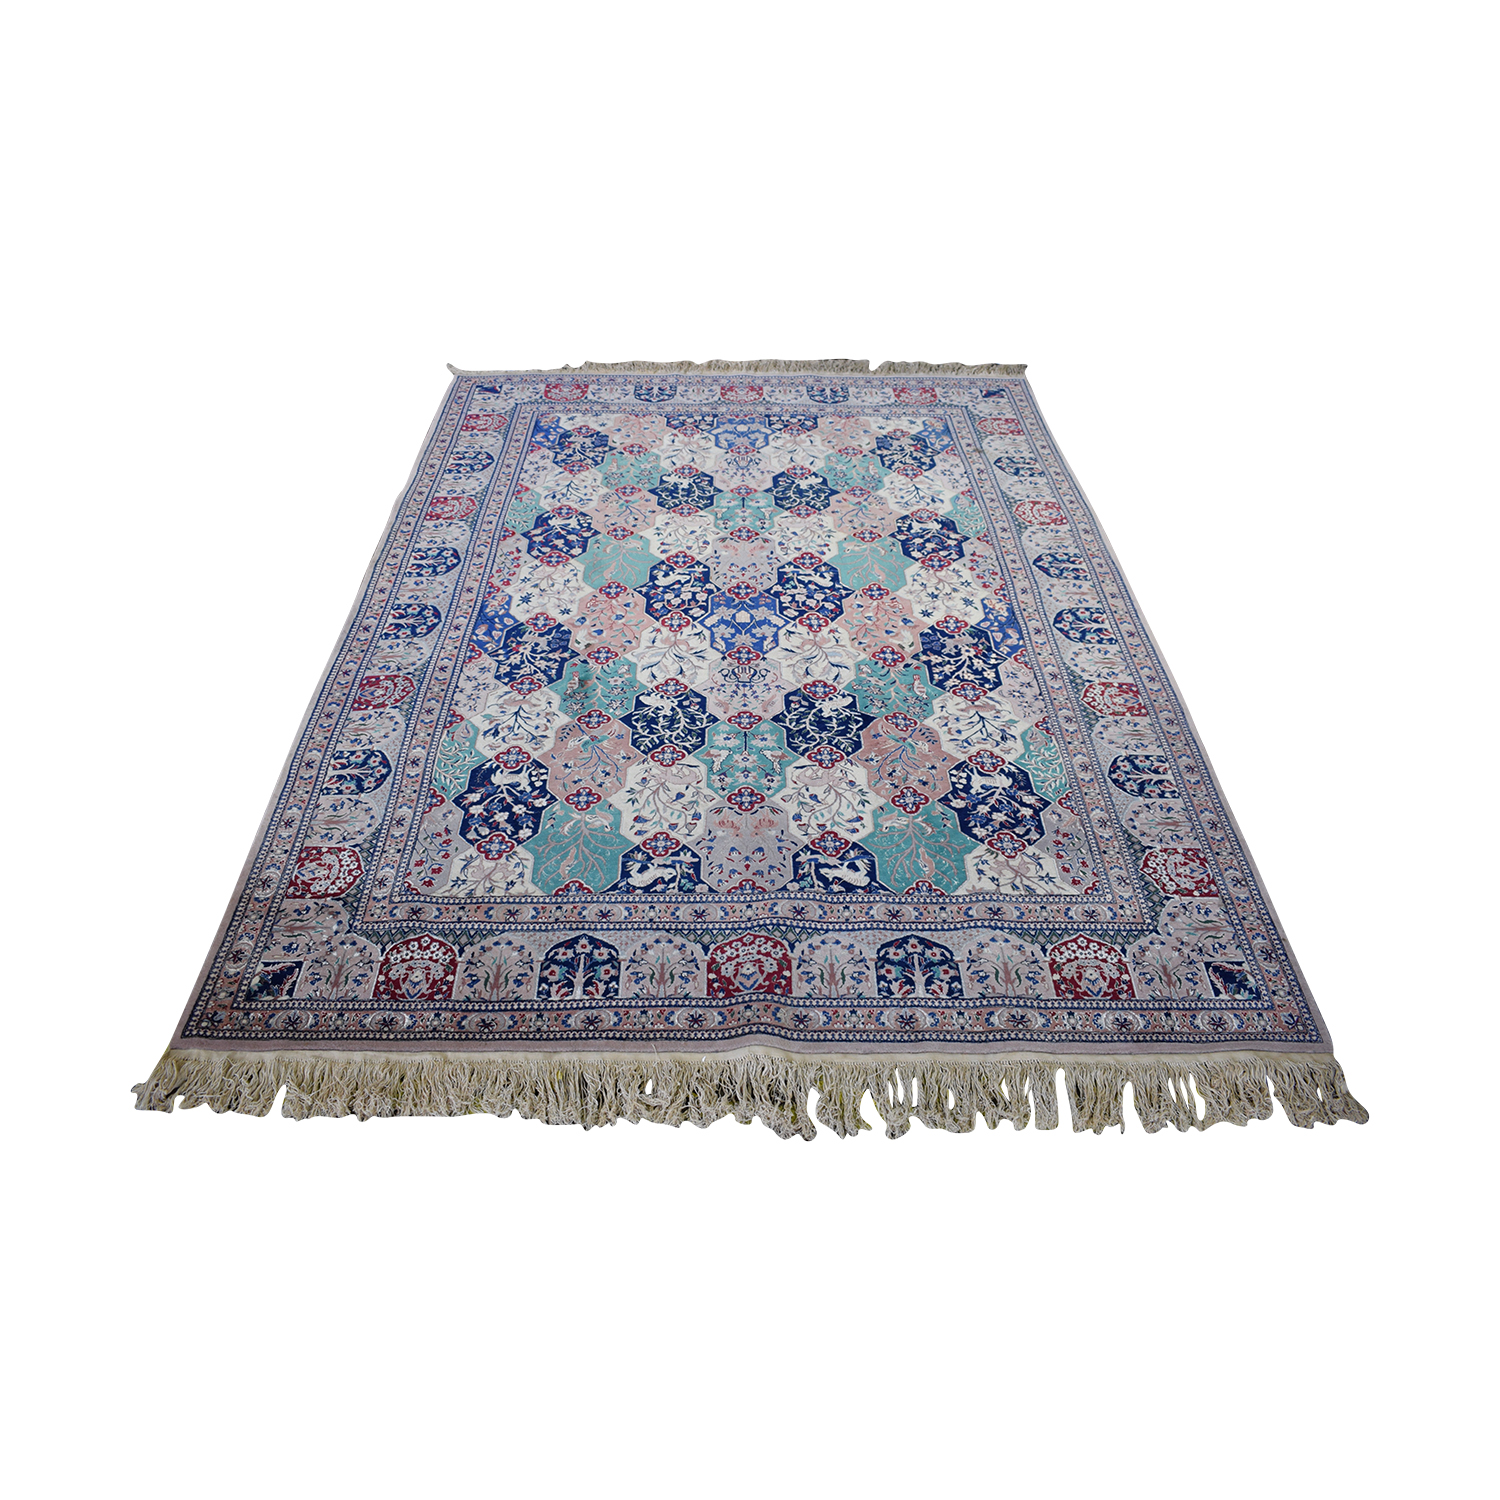 Multi-Colored Pakistani Rug with Fringe sale